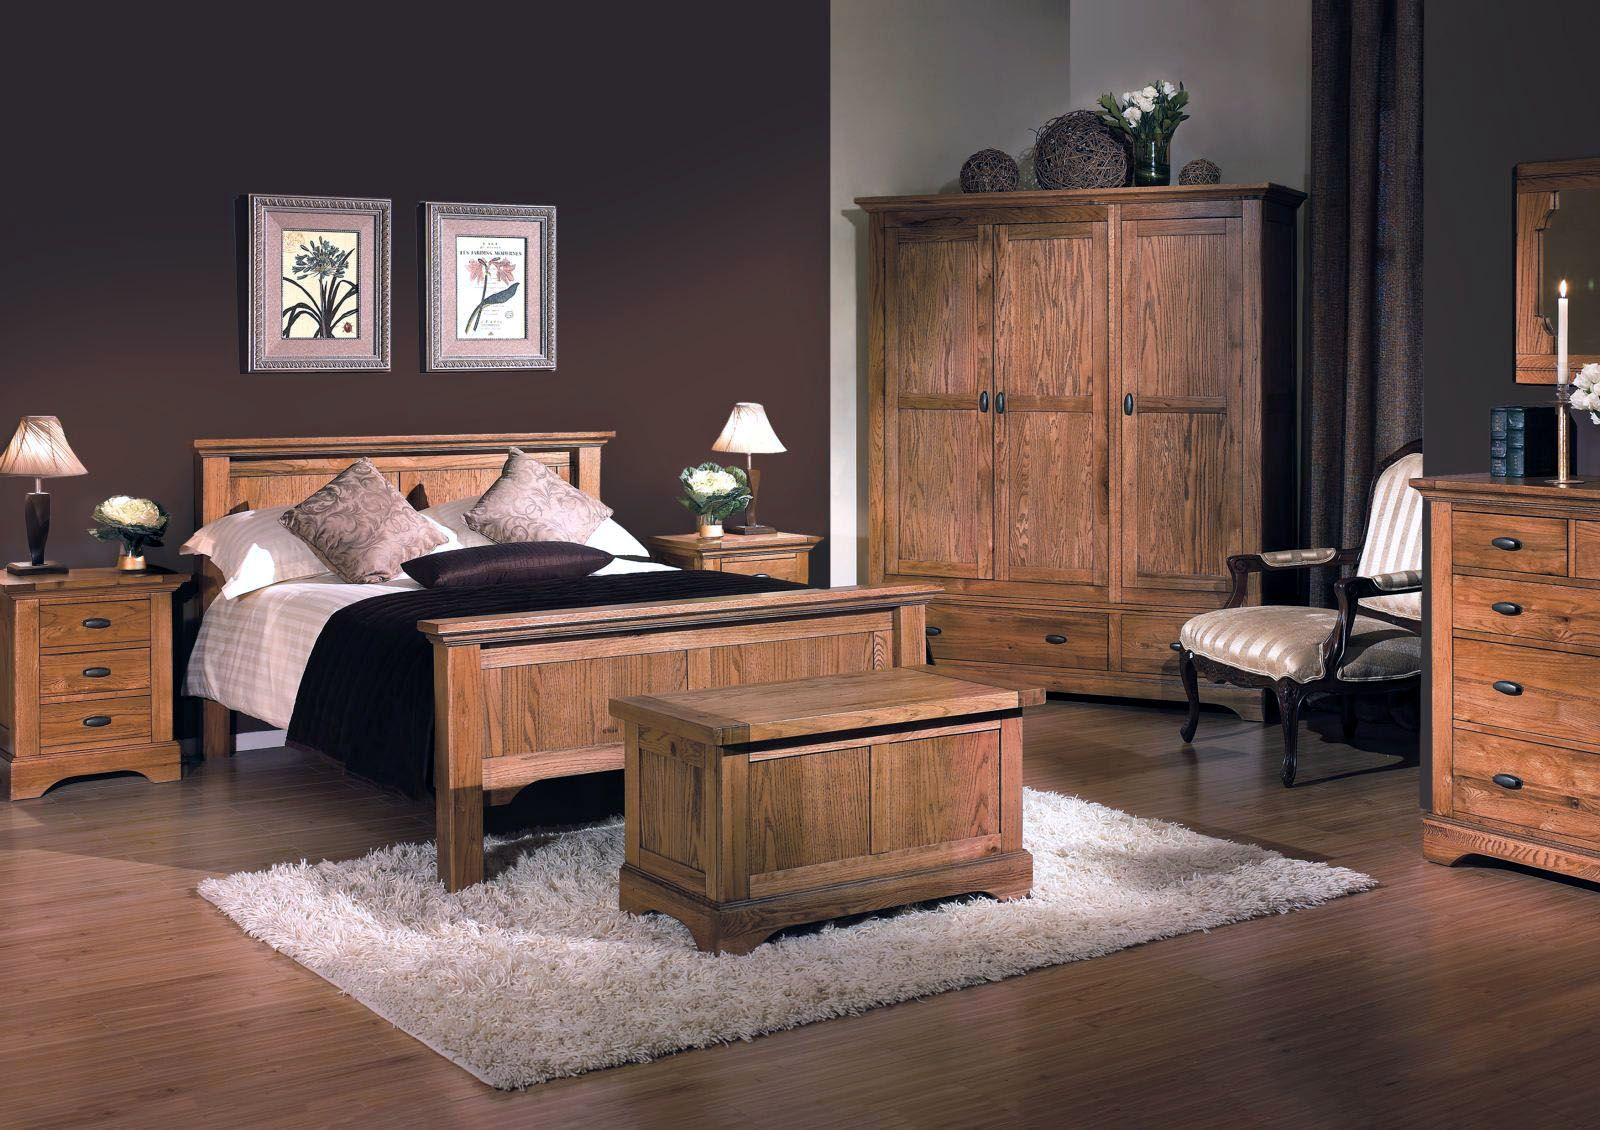 Master Bedroom Decorating Ideas  Oak bedroom furniture, Wooden